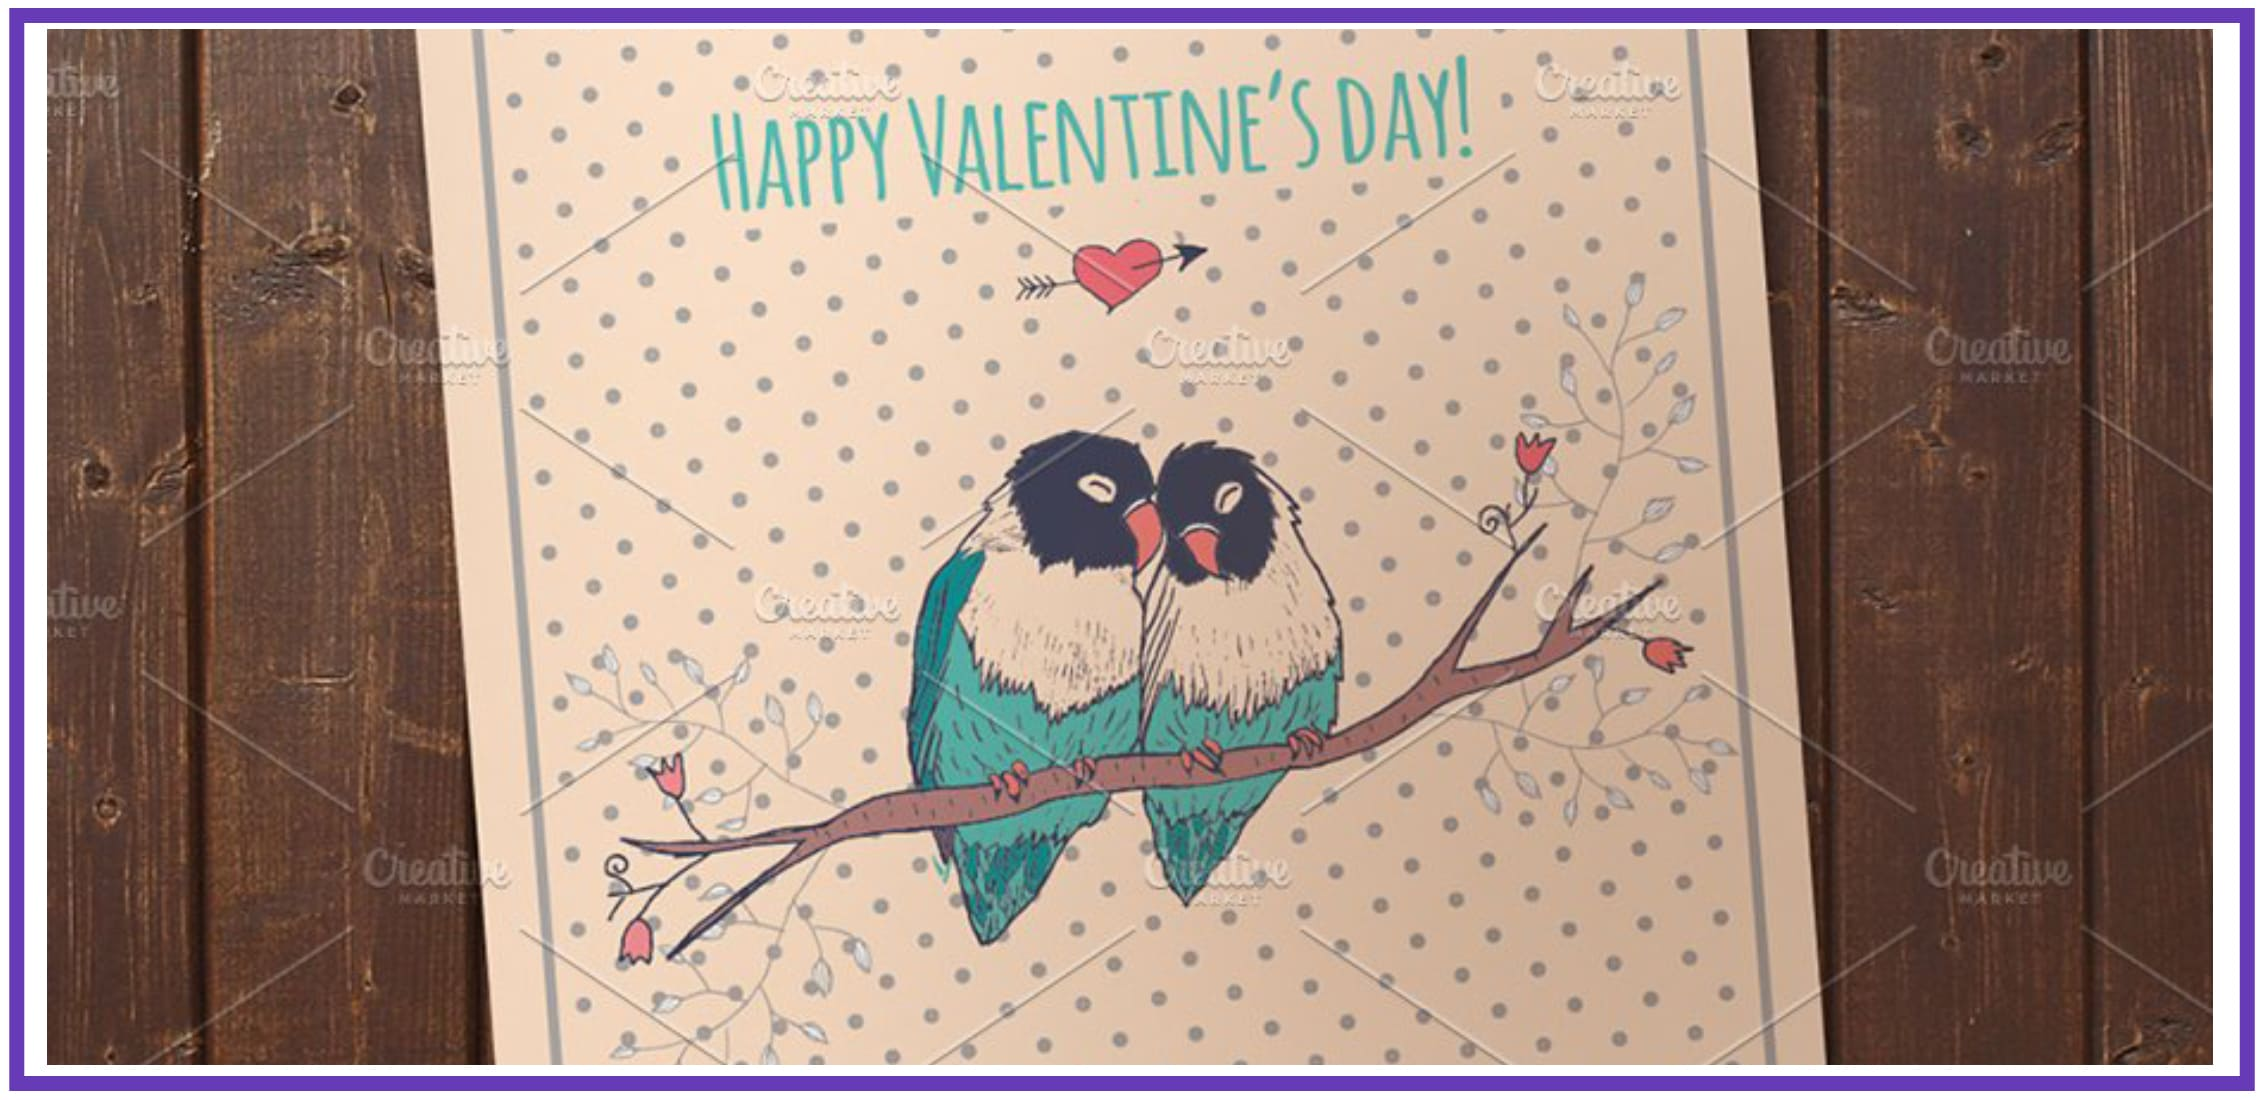 70+ Valentine's Day Cards 2021. Do not Forget about a Heartfelt Card for Your Valentine - valentines day card 40